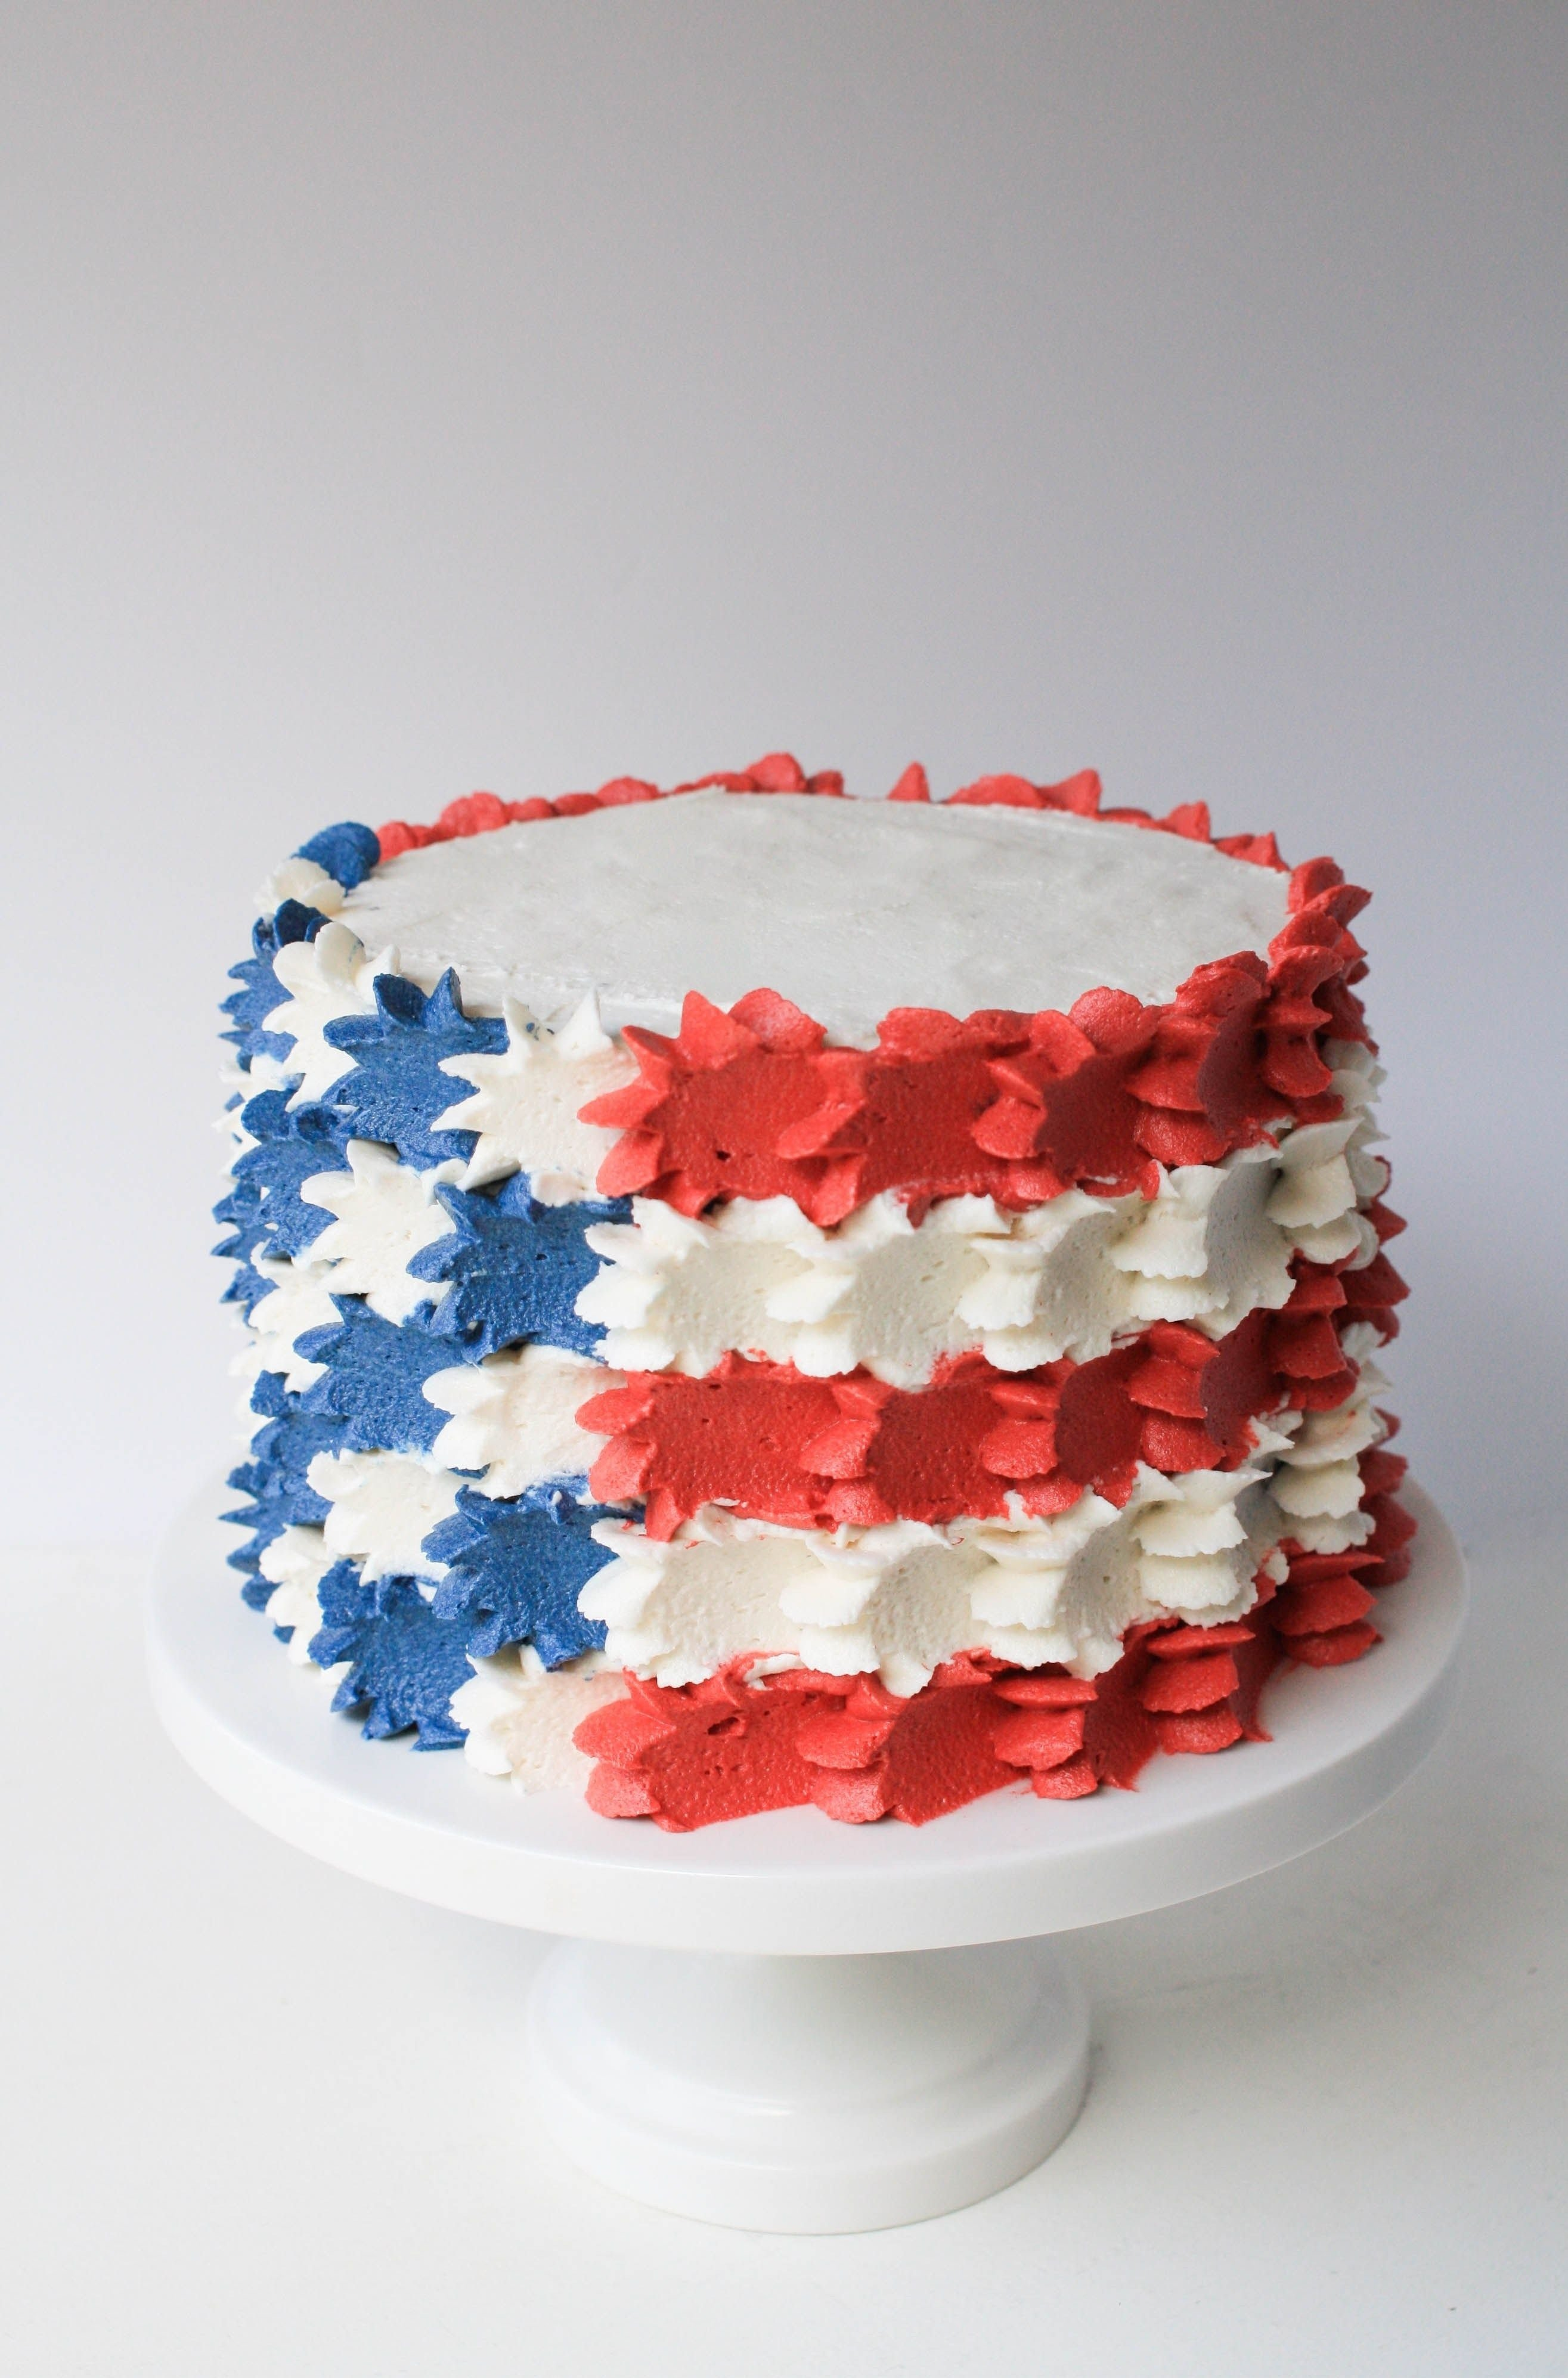 10 Stylish 4Th Of July Baking Ideas stars and stripes buttercream 4th of july cake erin bakes cake